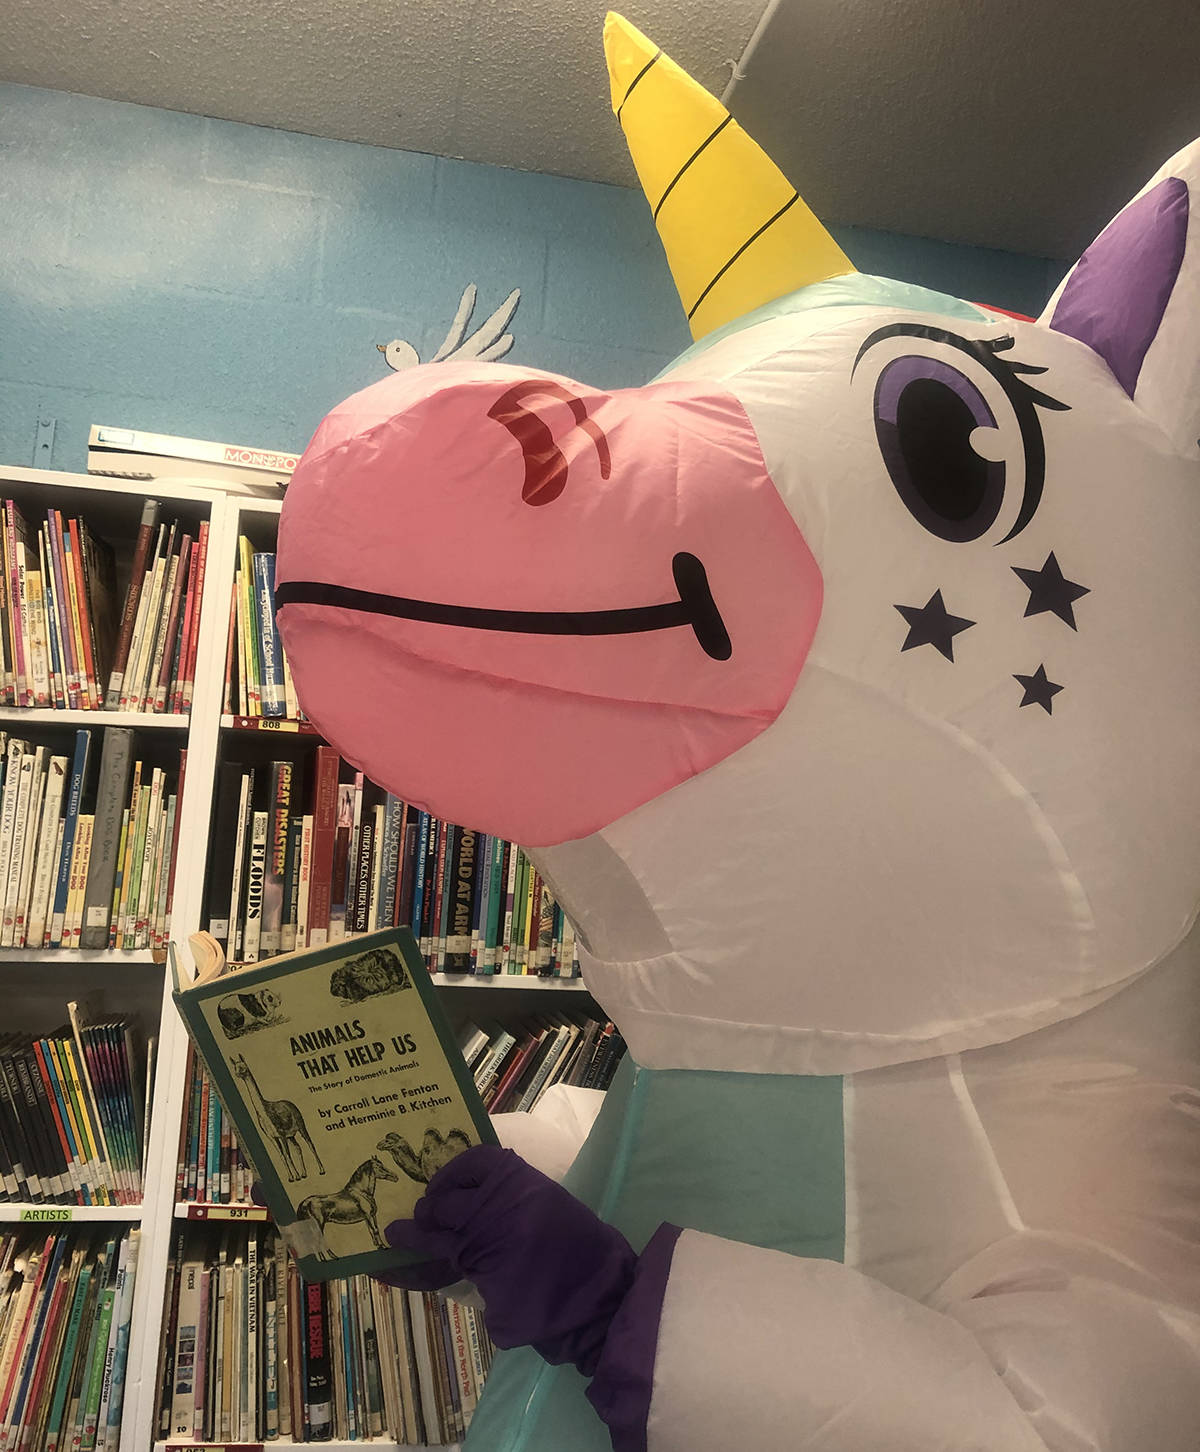 Eunice the Unicorn likes many of the same things the students do, including reading an interesting book. She is an important part of the school community, delighting staff and students at Cornerstone Christian School in Abbotsford. (Submitted)